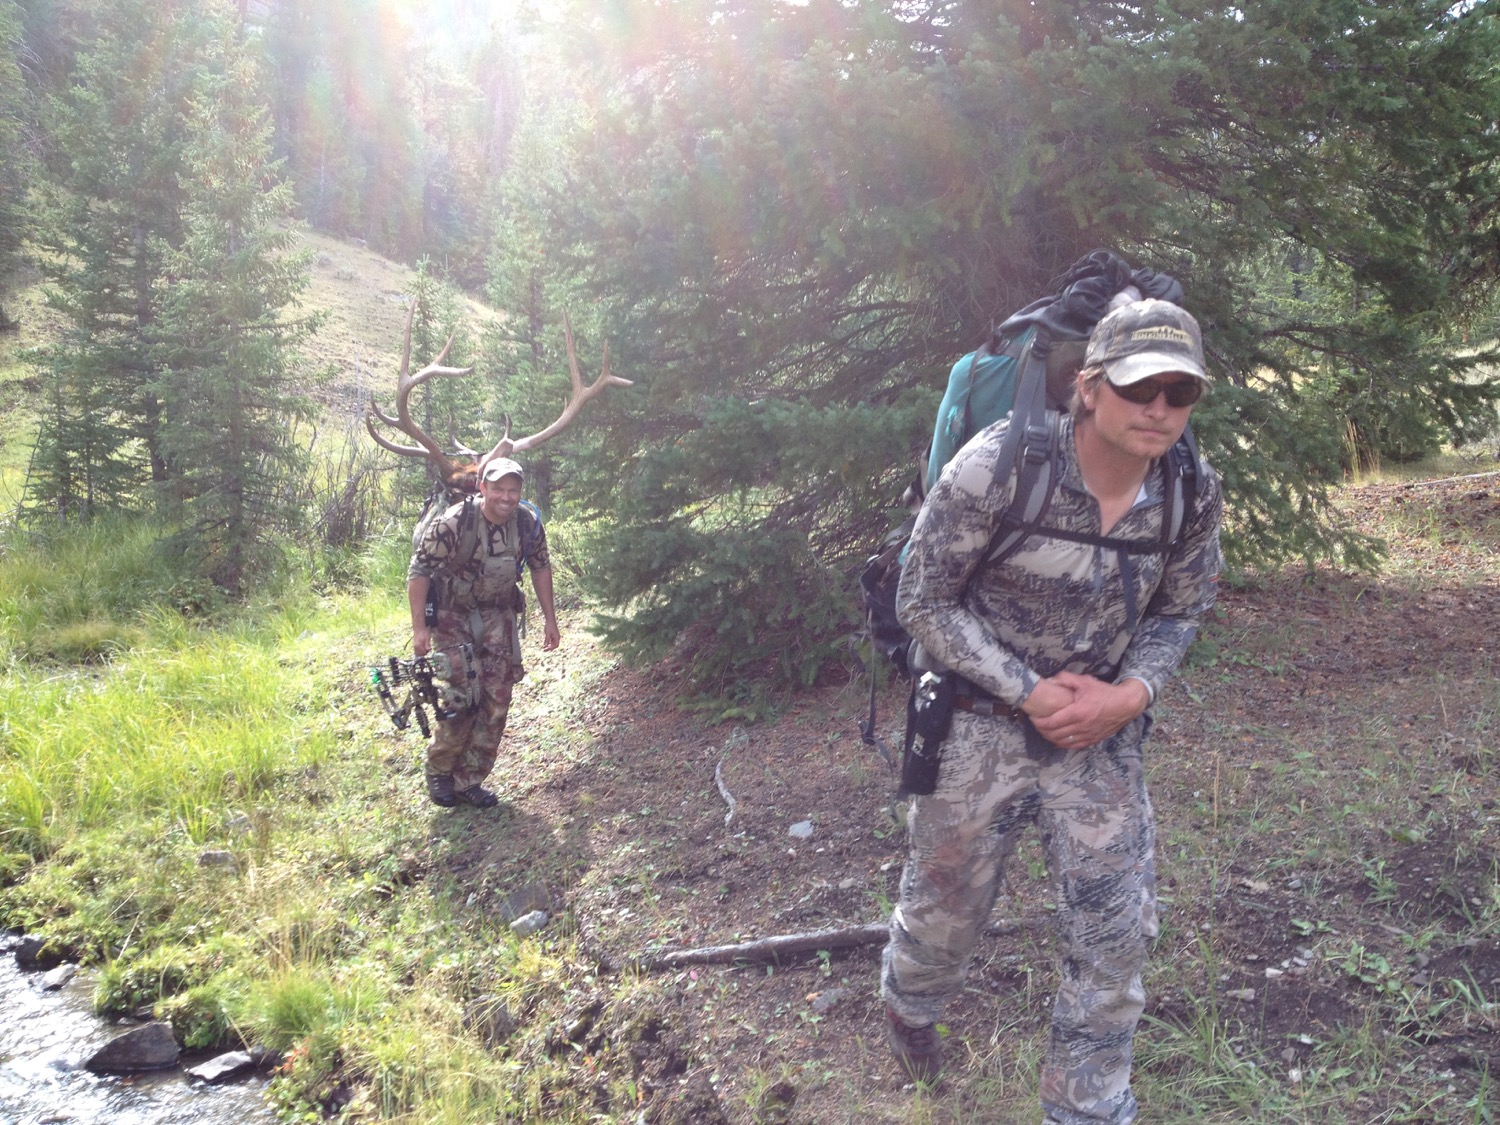 Bull elk down. Opening day of bow hunting season on the Idaho-Montana border. (Photo by Emily Stifler Wolfe)